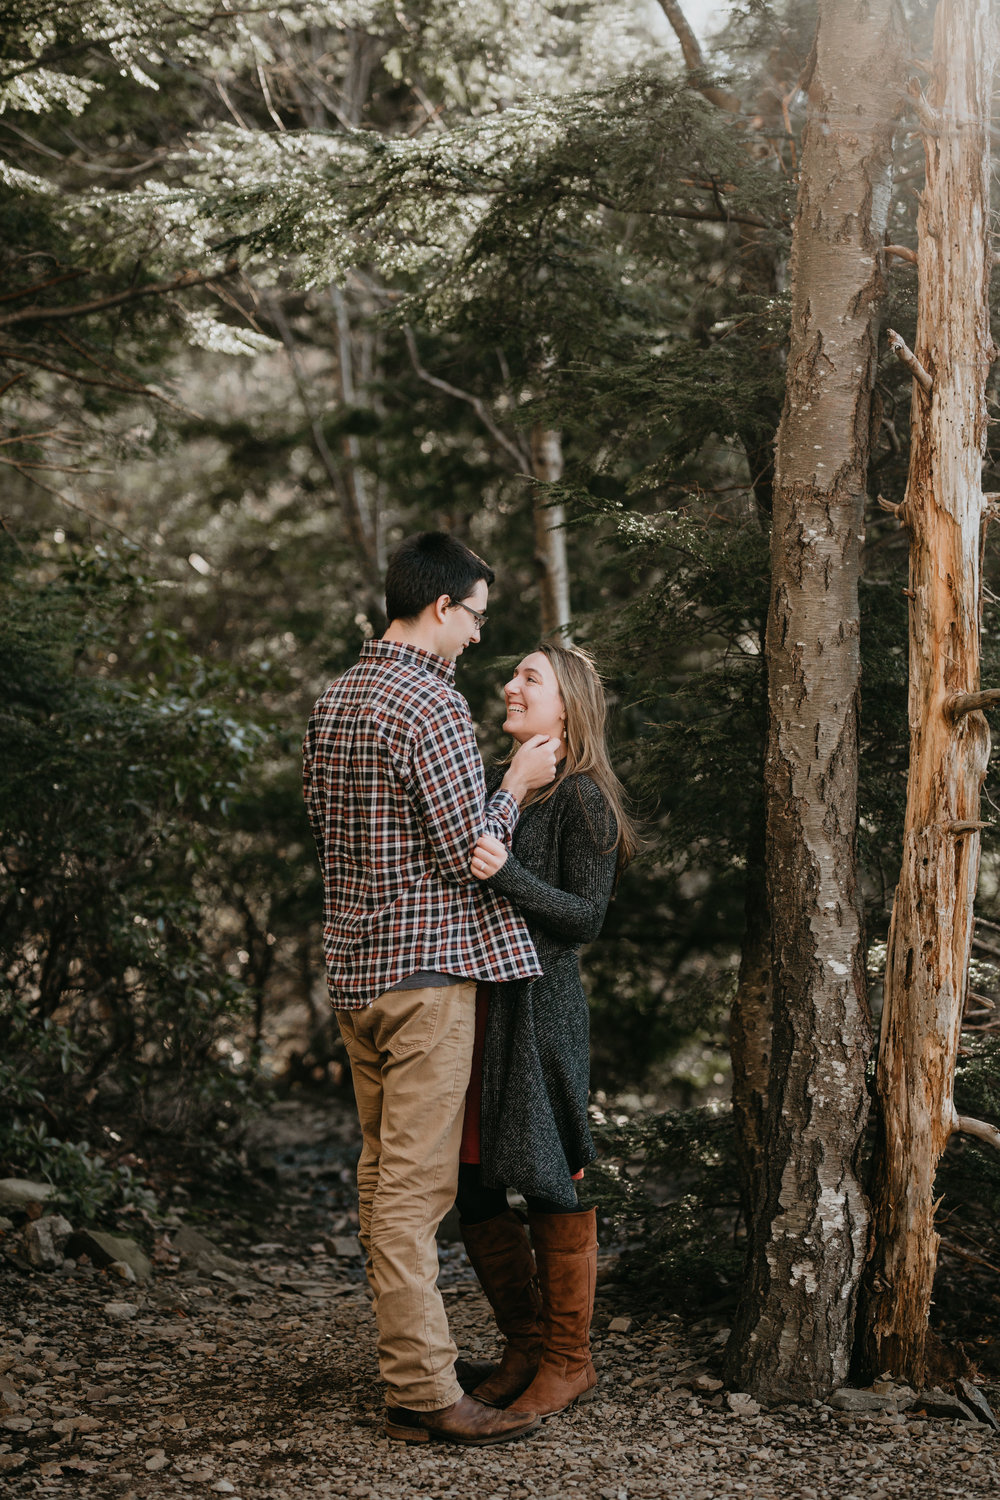 nicole-daacke-photography-shenandoah-national-park-adventure-engagement-session-with-fall-foliage-shenandoah-elopement-photographer-engagement-photos-in-virginia-charlottesville-national-park-adventure-elopement-photographer-3558.jpg